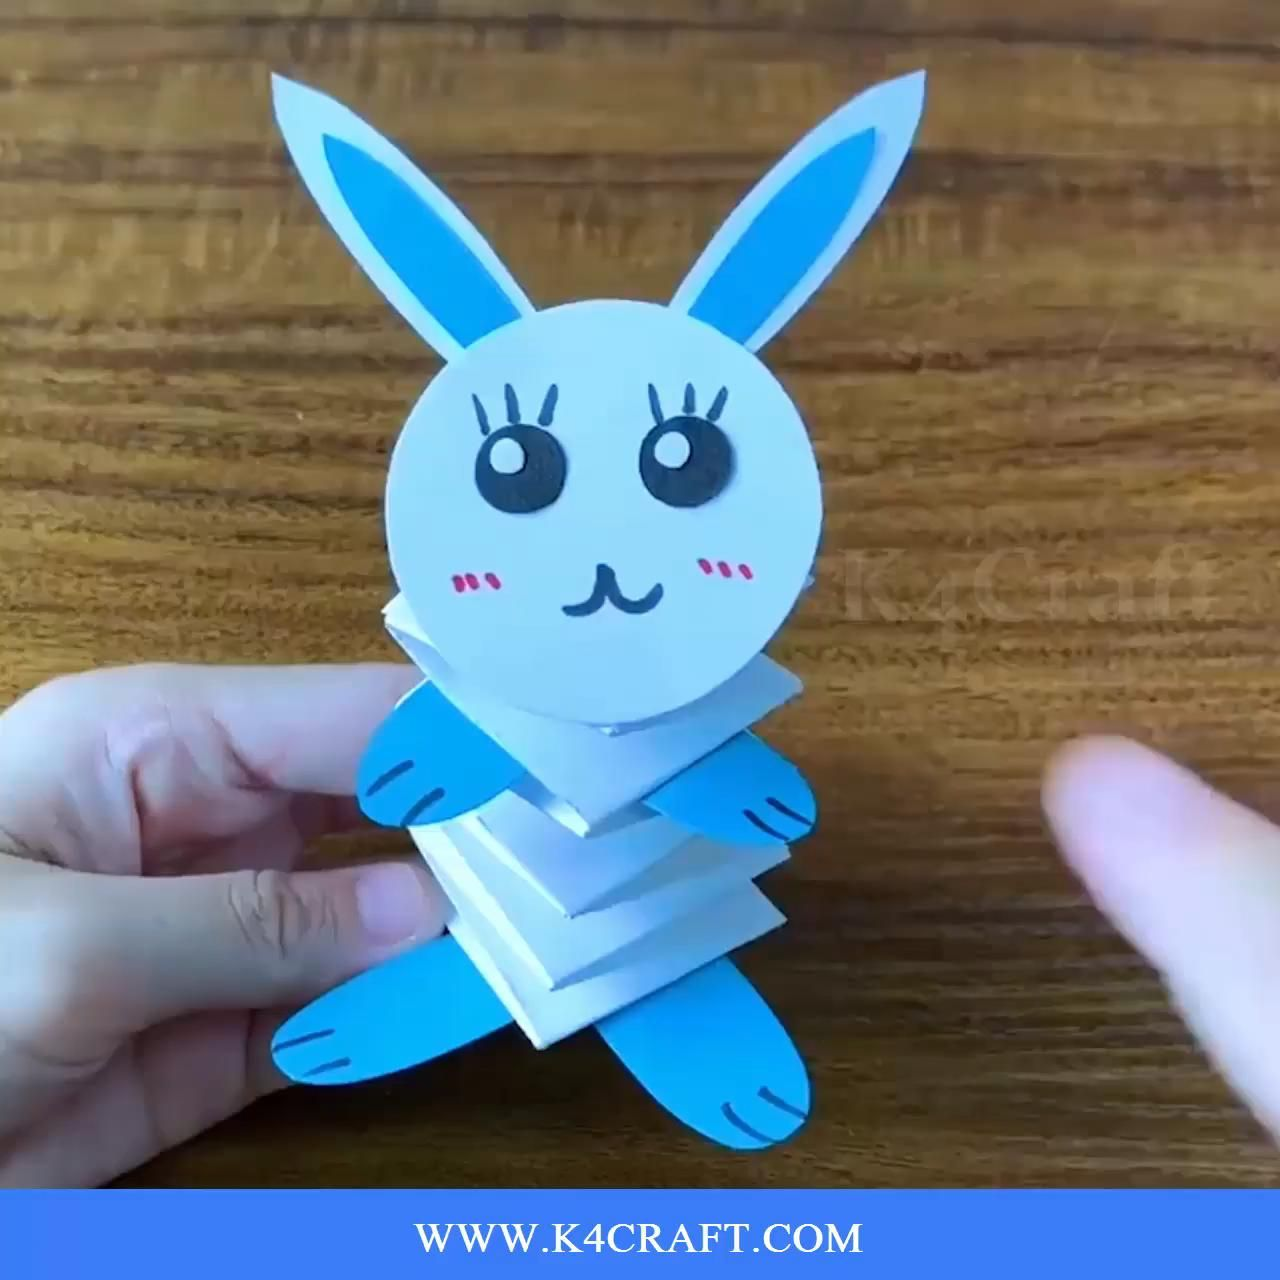 Photo of Paper Craft ldeas for Kids